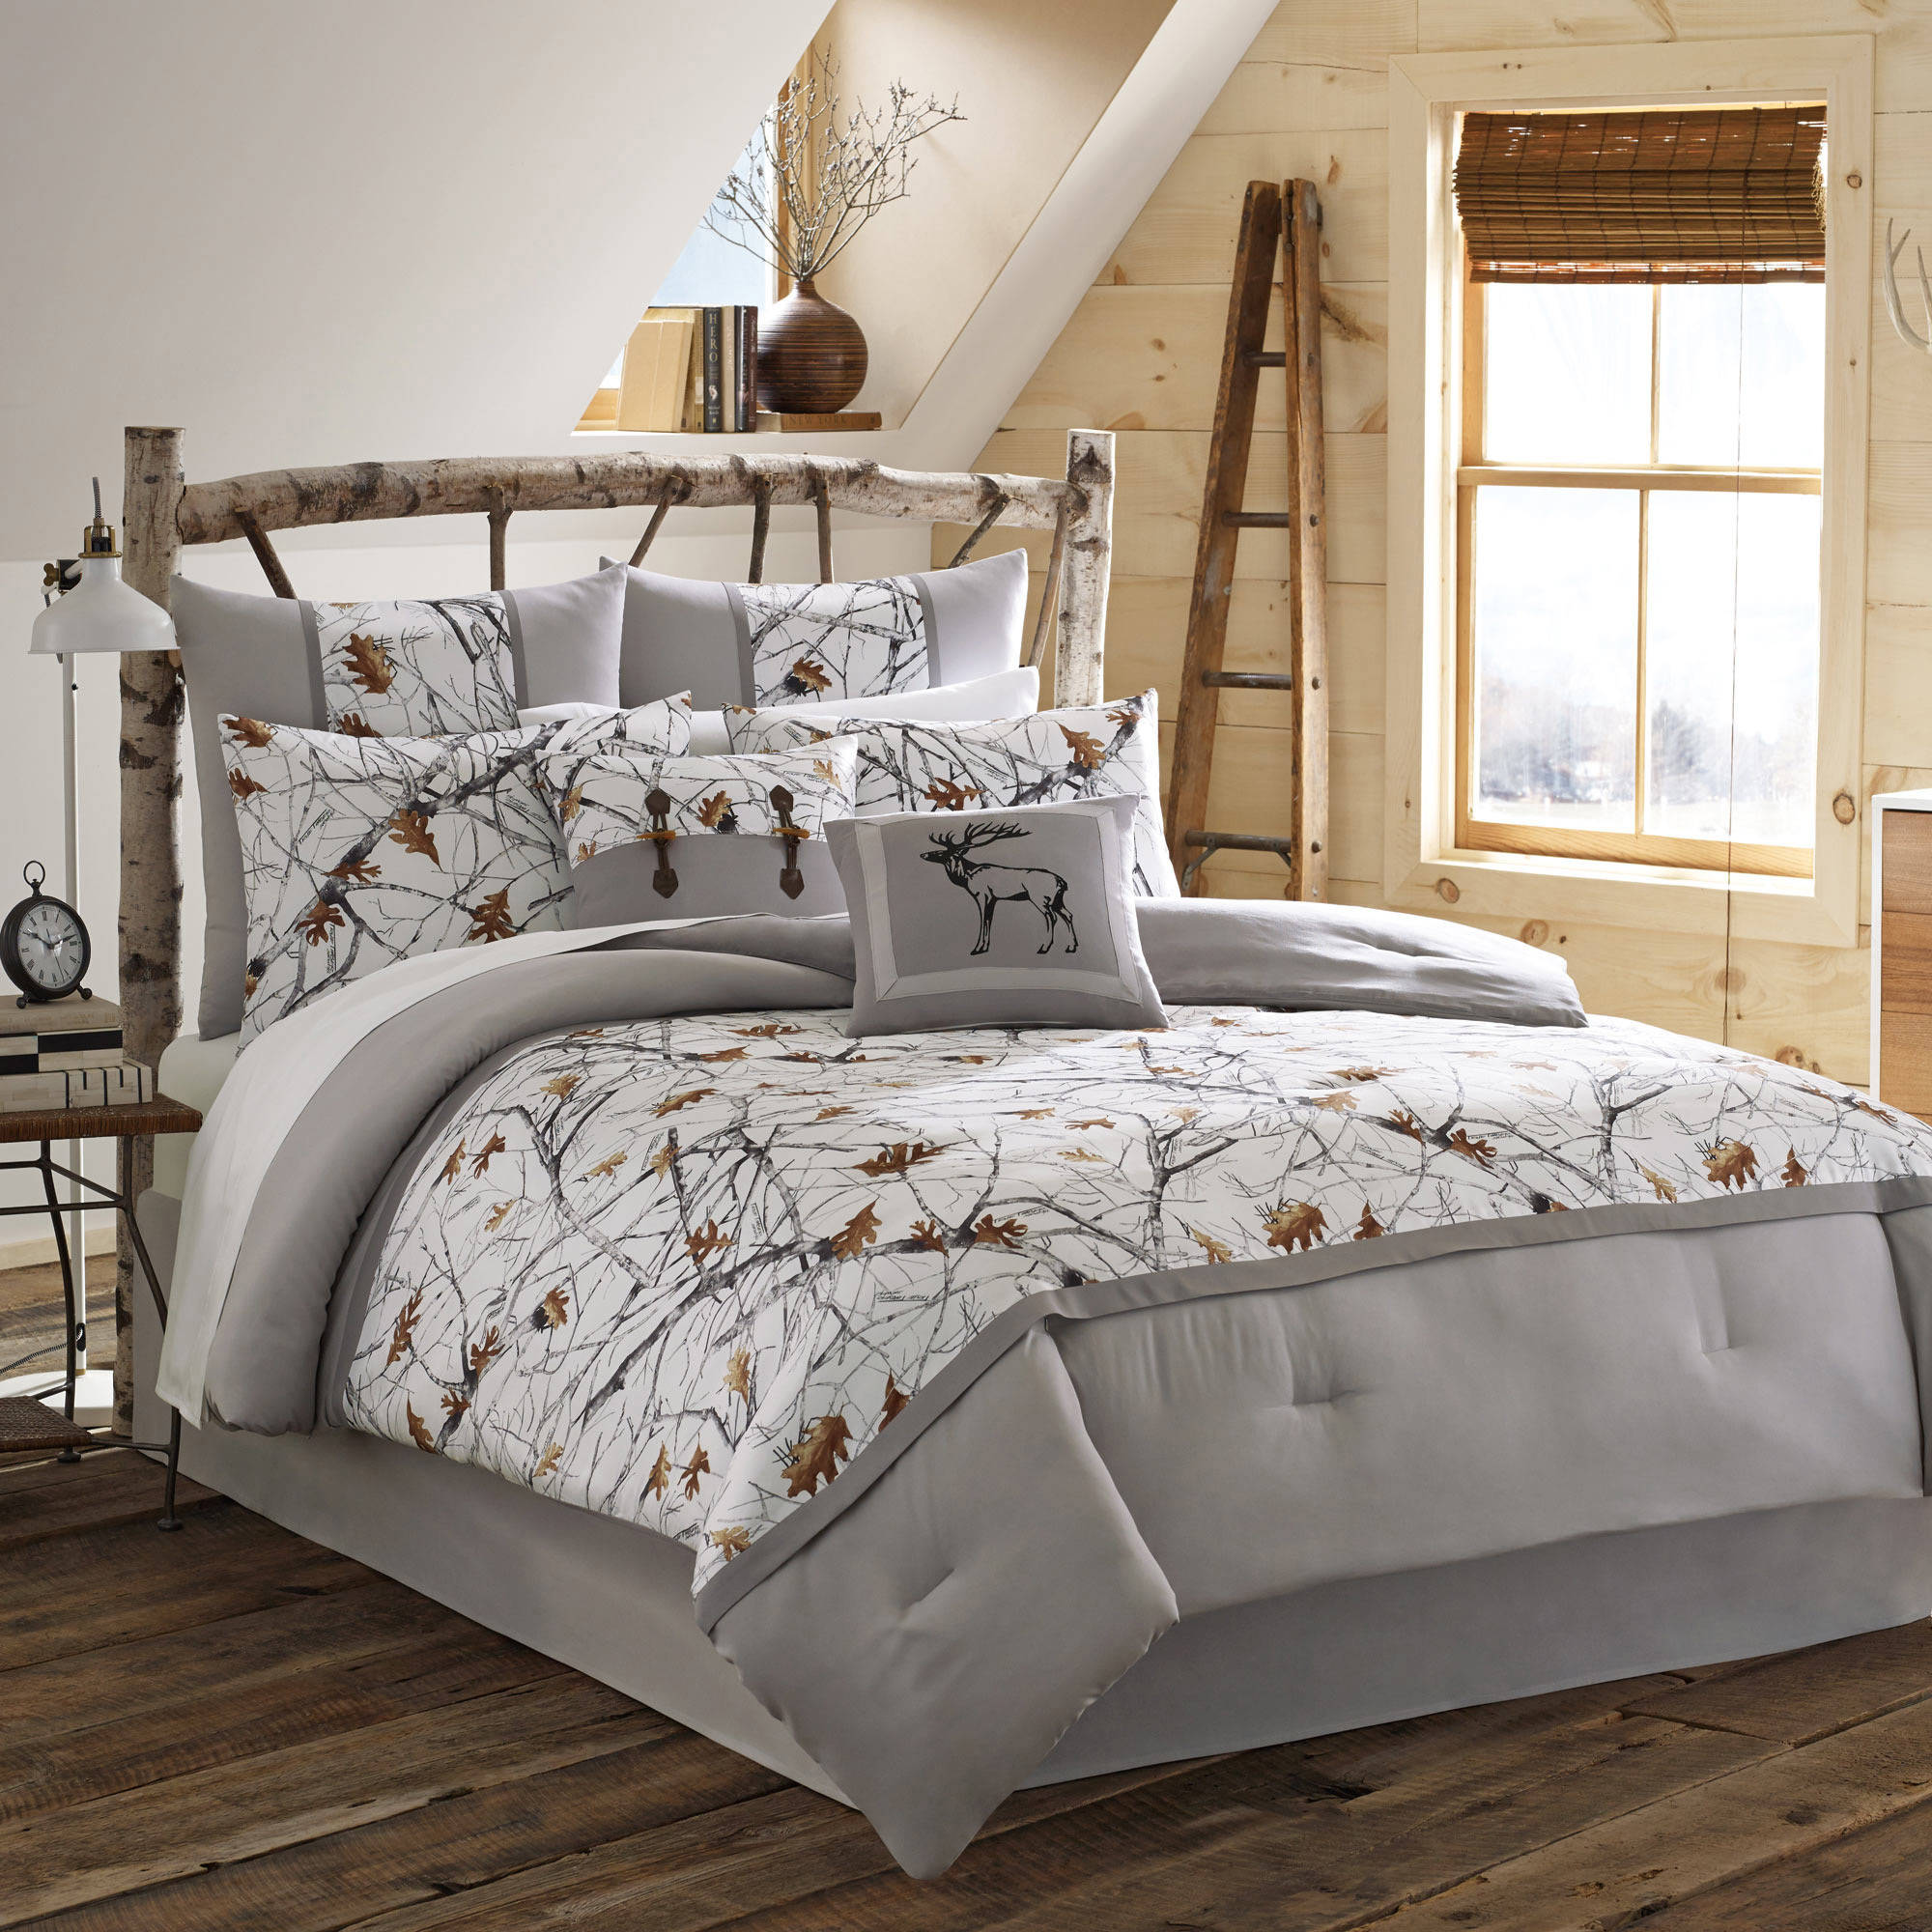 True timber snowfall bedding comforter set white walmart com